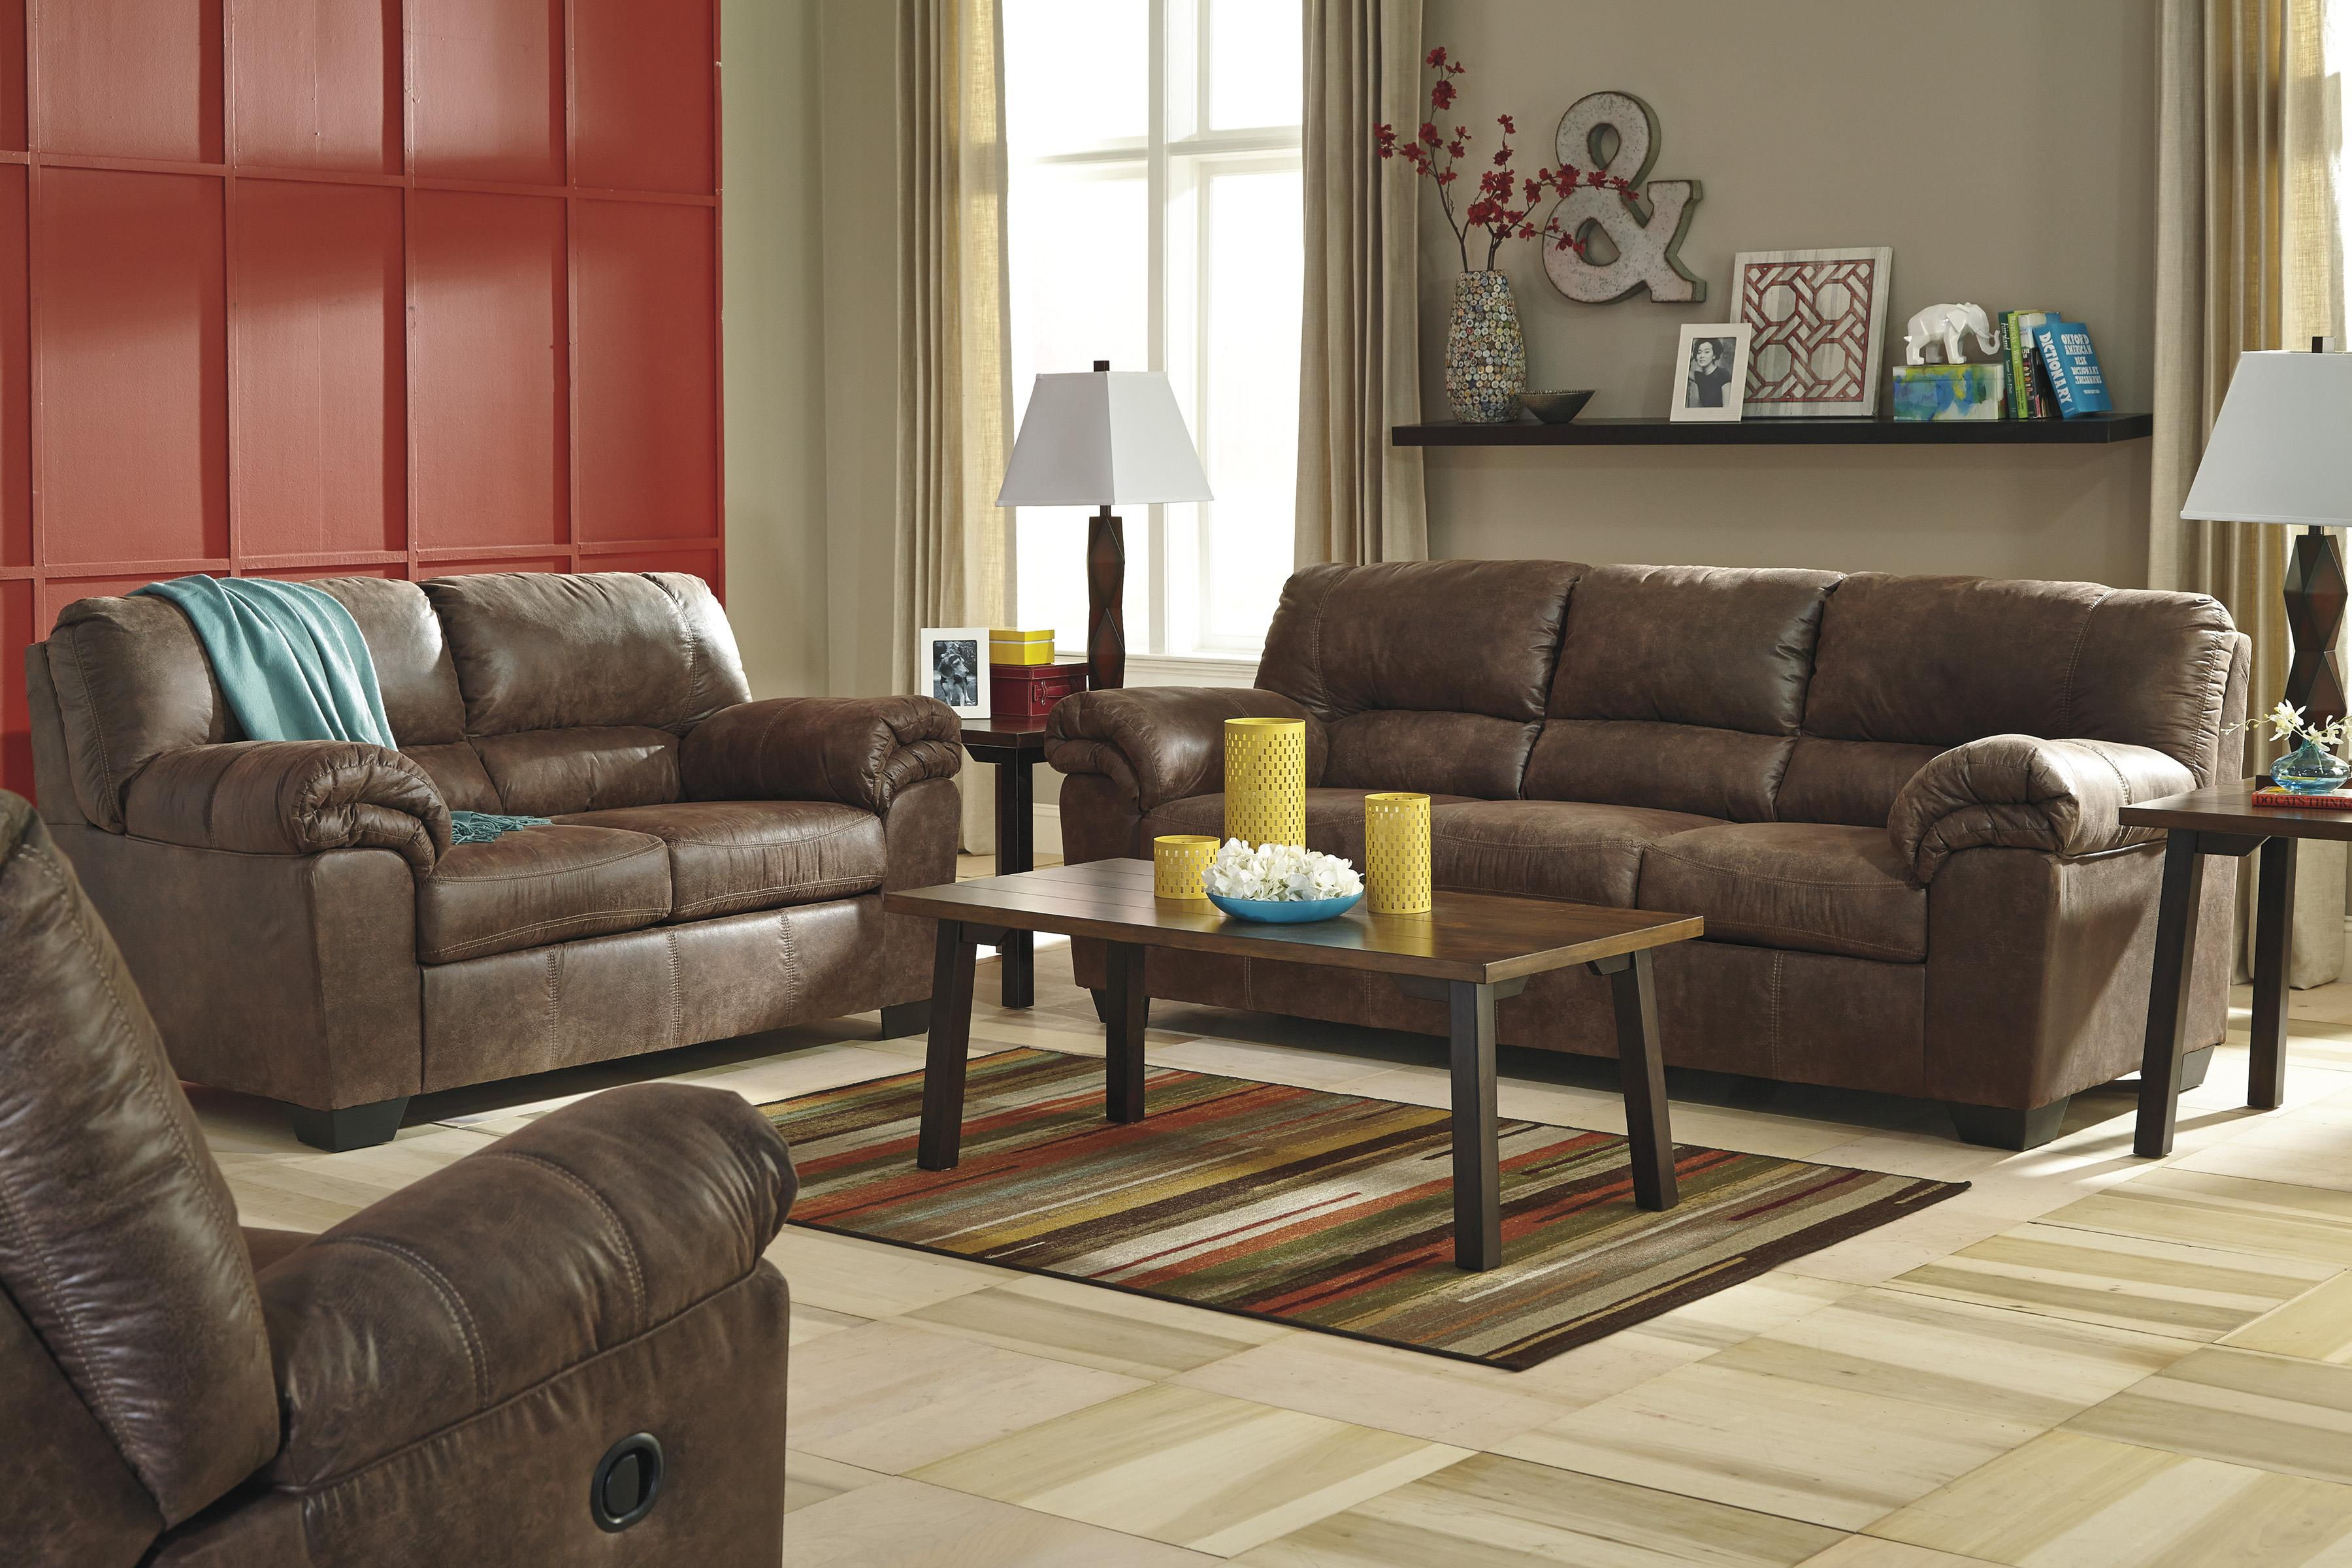 Signature Design by Ashley Bladen Stationary Living Room Group - Item Number: 12000 Living Room Group 3